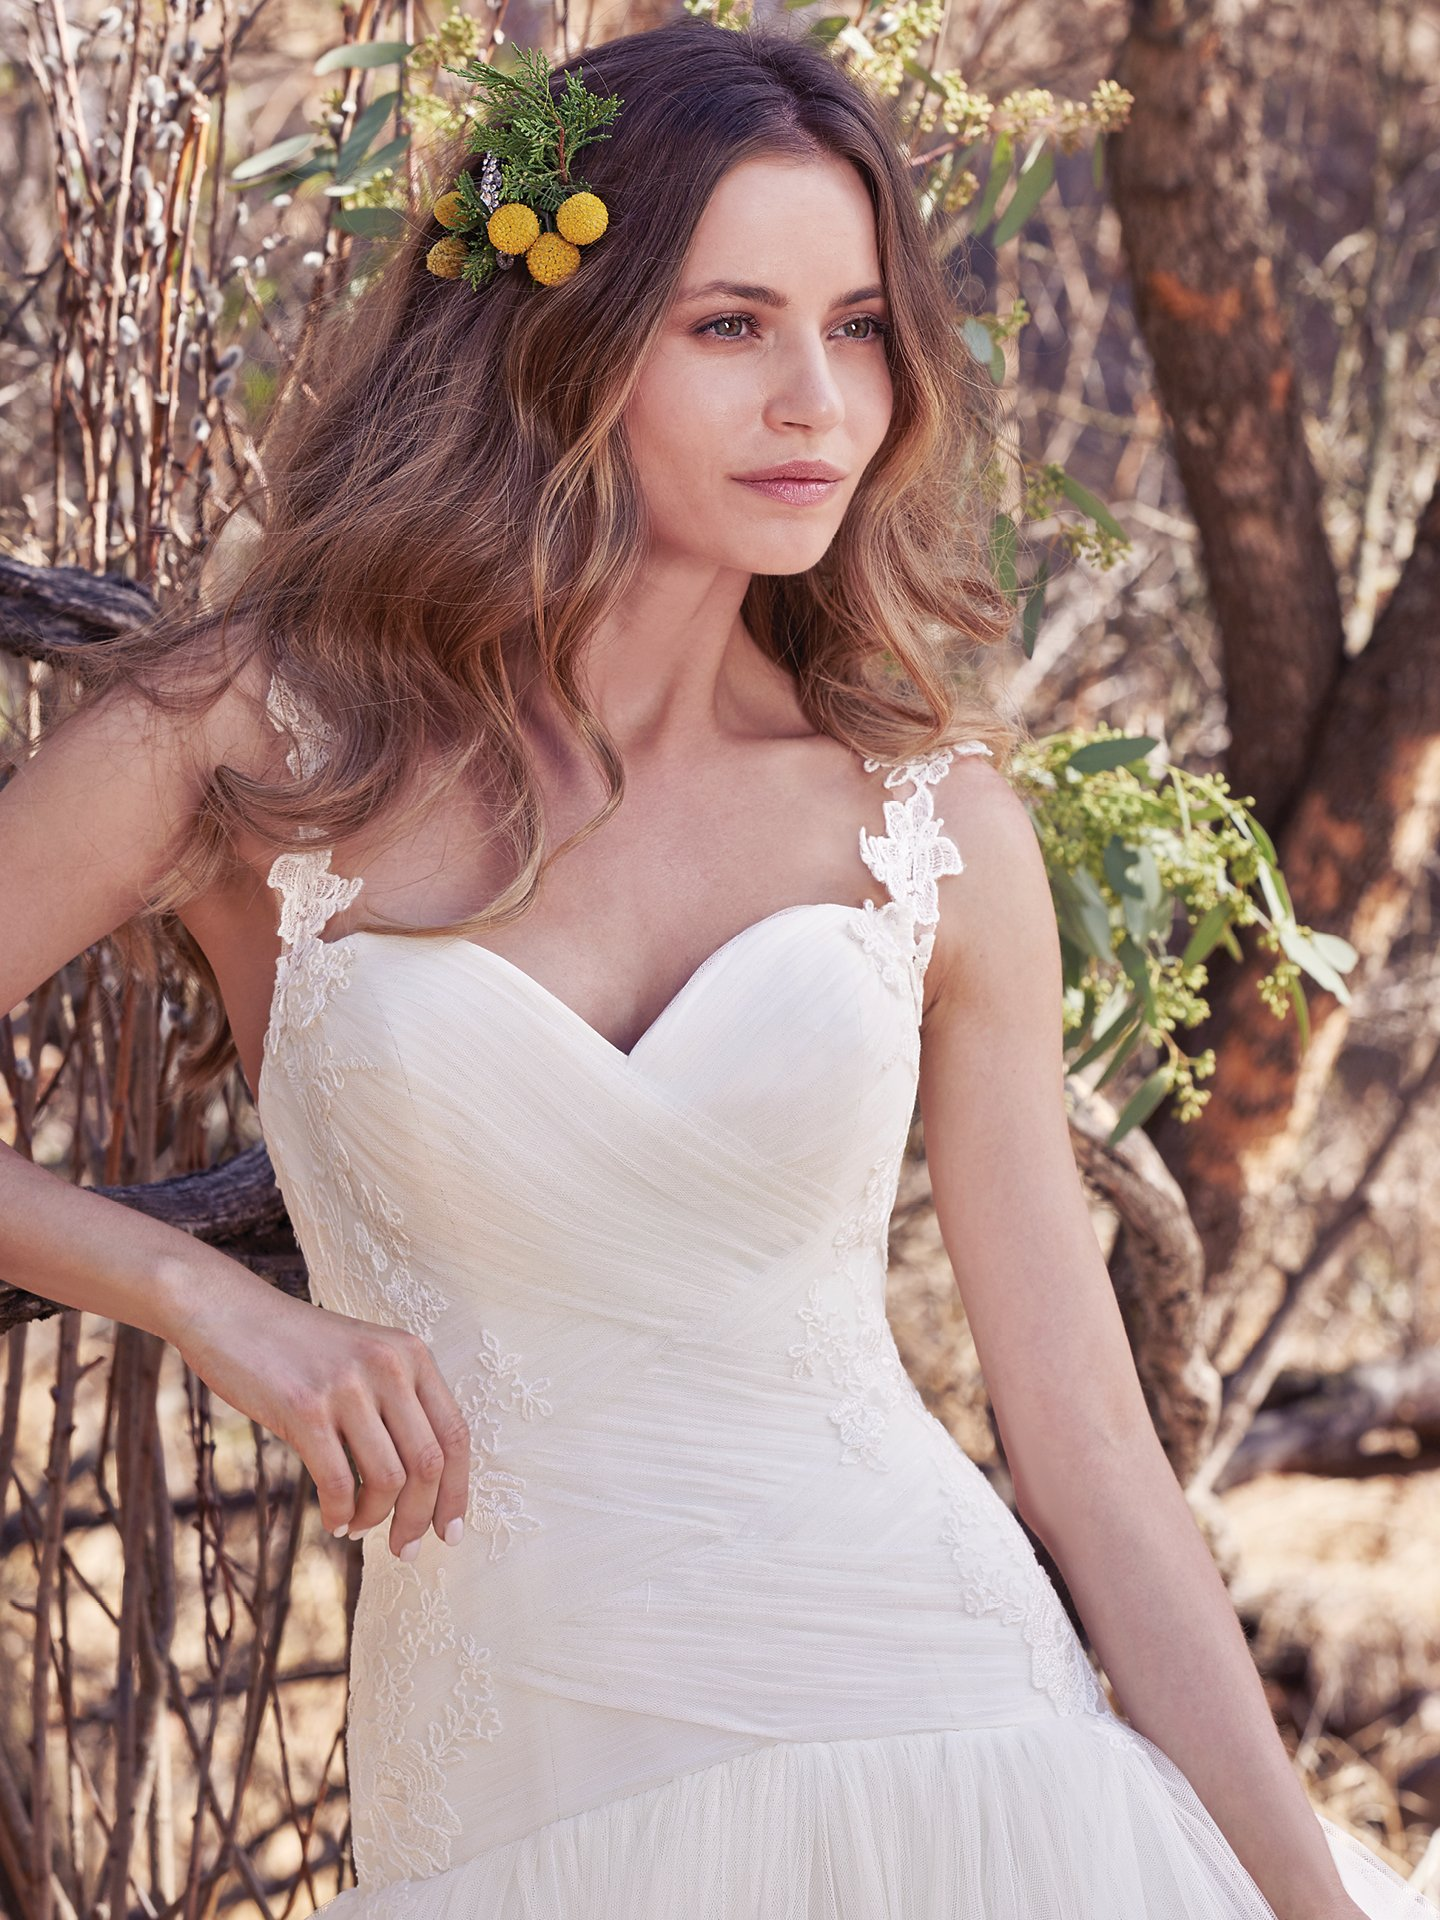 Asymmetrical Ruching Adds Movement and Dimension. Wedding Gowns that Look Great in Photos - Kirvy asymmetrical wedding dress by Maggie Sottero